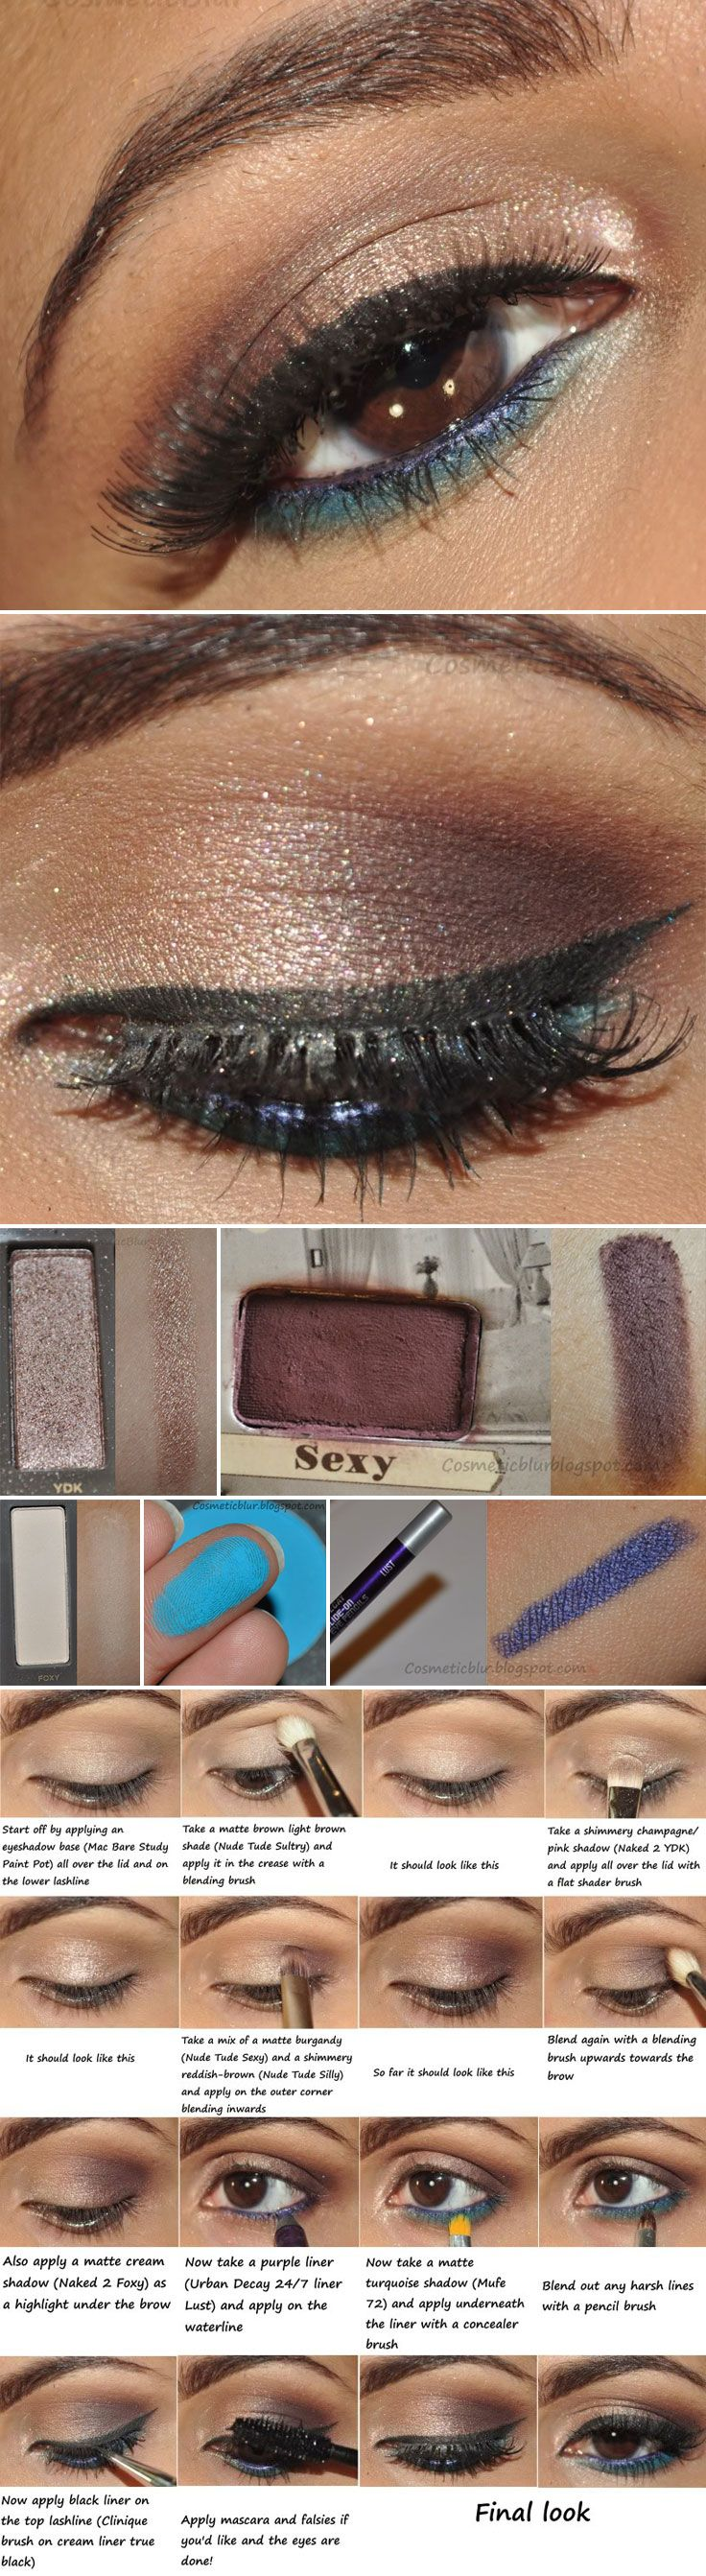 DIY :: Light Smokey Eyes w/ a Pop of Color by #cosmeticblur :: Uses MAC bare Study Paint Pot, Y2K from Naked 2 (a shimmery pinky-brown), Sexy from theBalm's Nude Tude (matte rusty color), Foxy from Naked 2 (matte white), Urban Decay 24/7 liner in Lust (purple) & MUFE #72 (a bright matte turquoise blue) :: CLICK for YouTube VIDEO TUTORIAL!!